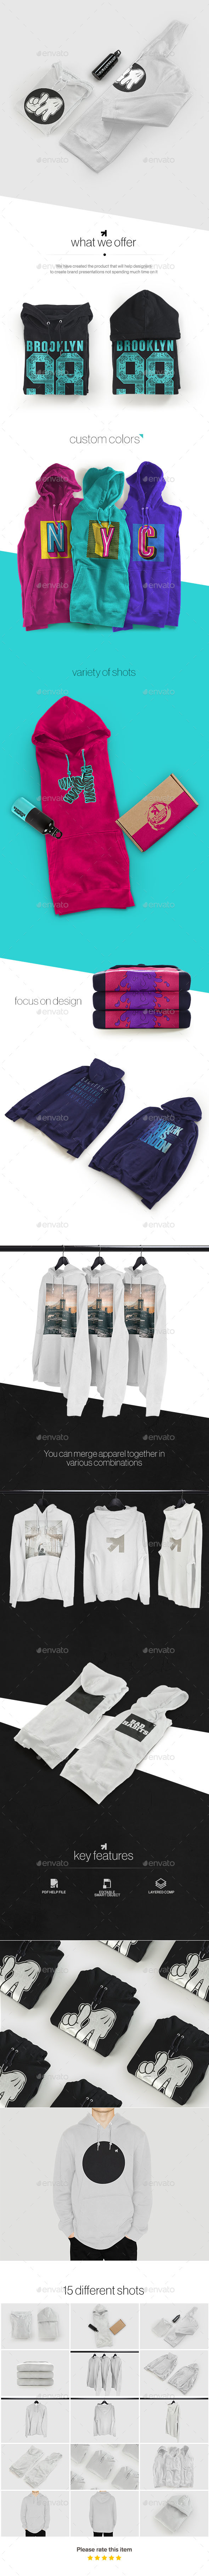 Hoodie Sweatshirt Presentation Mockup - Apparel Product Mock-Ups